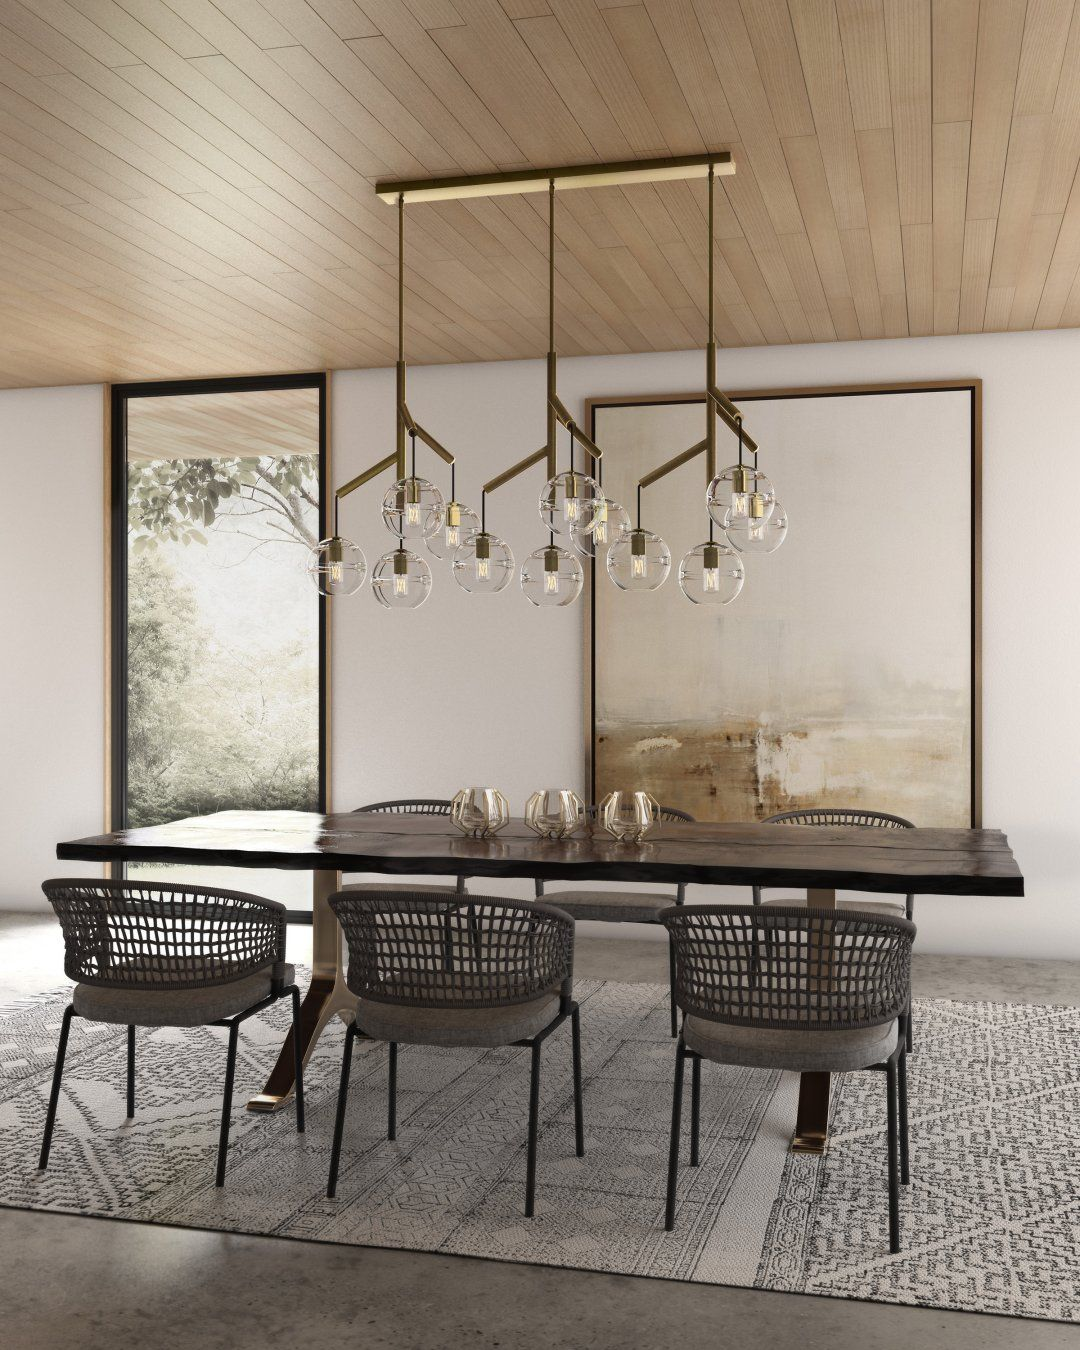 Chandeliers in a modern dining room